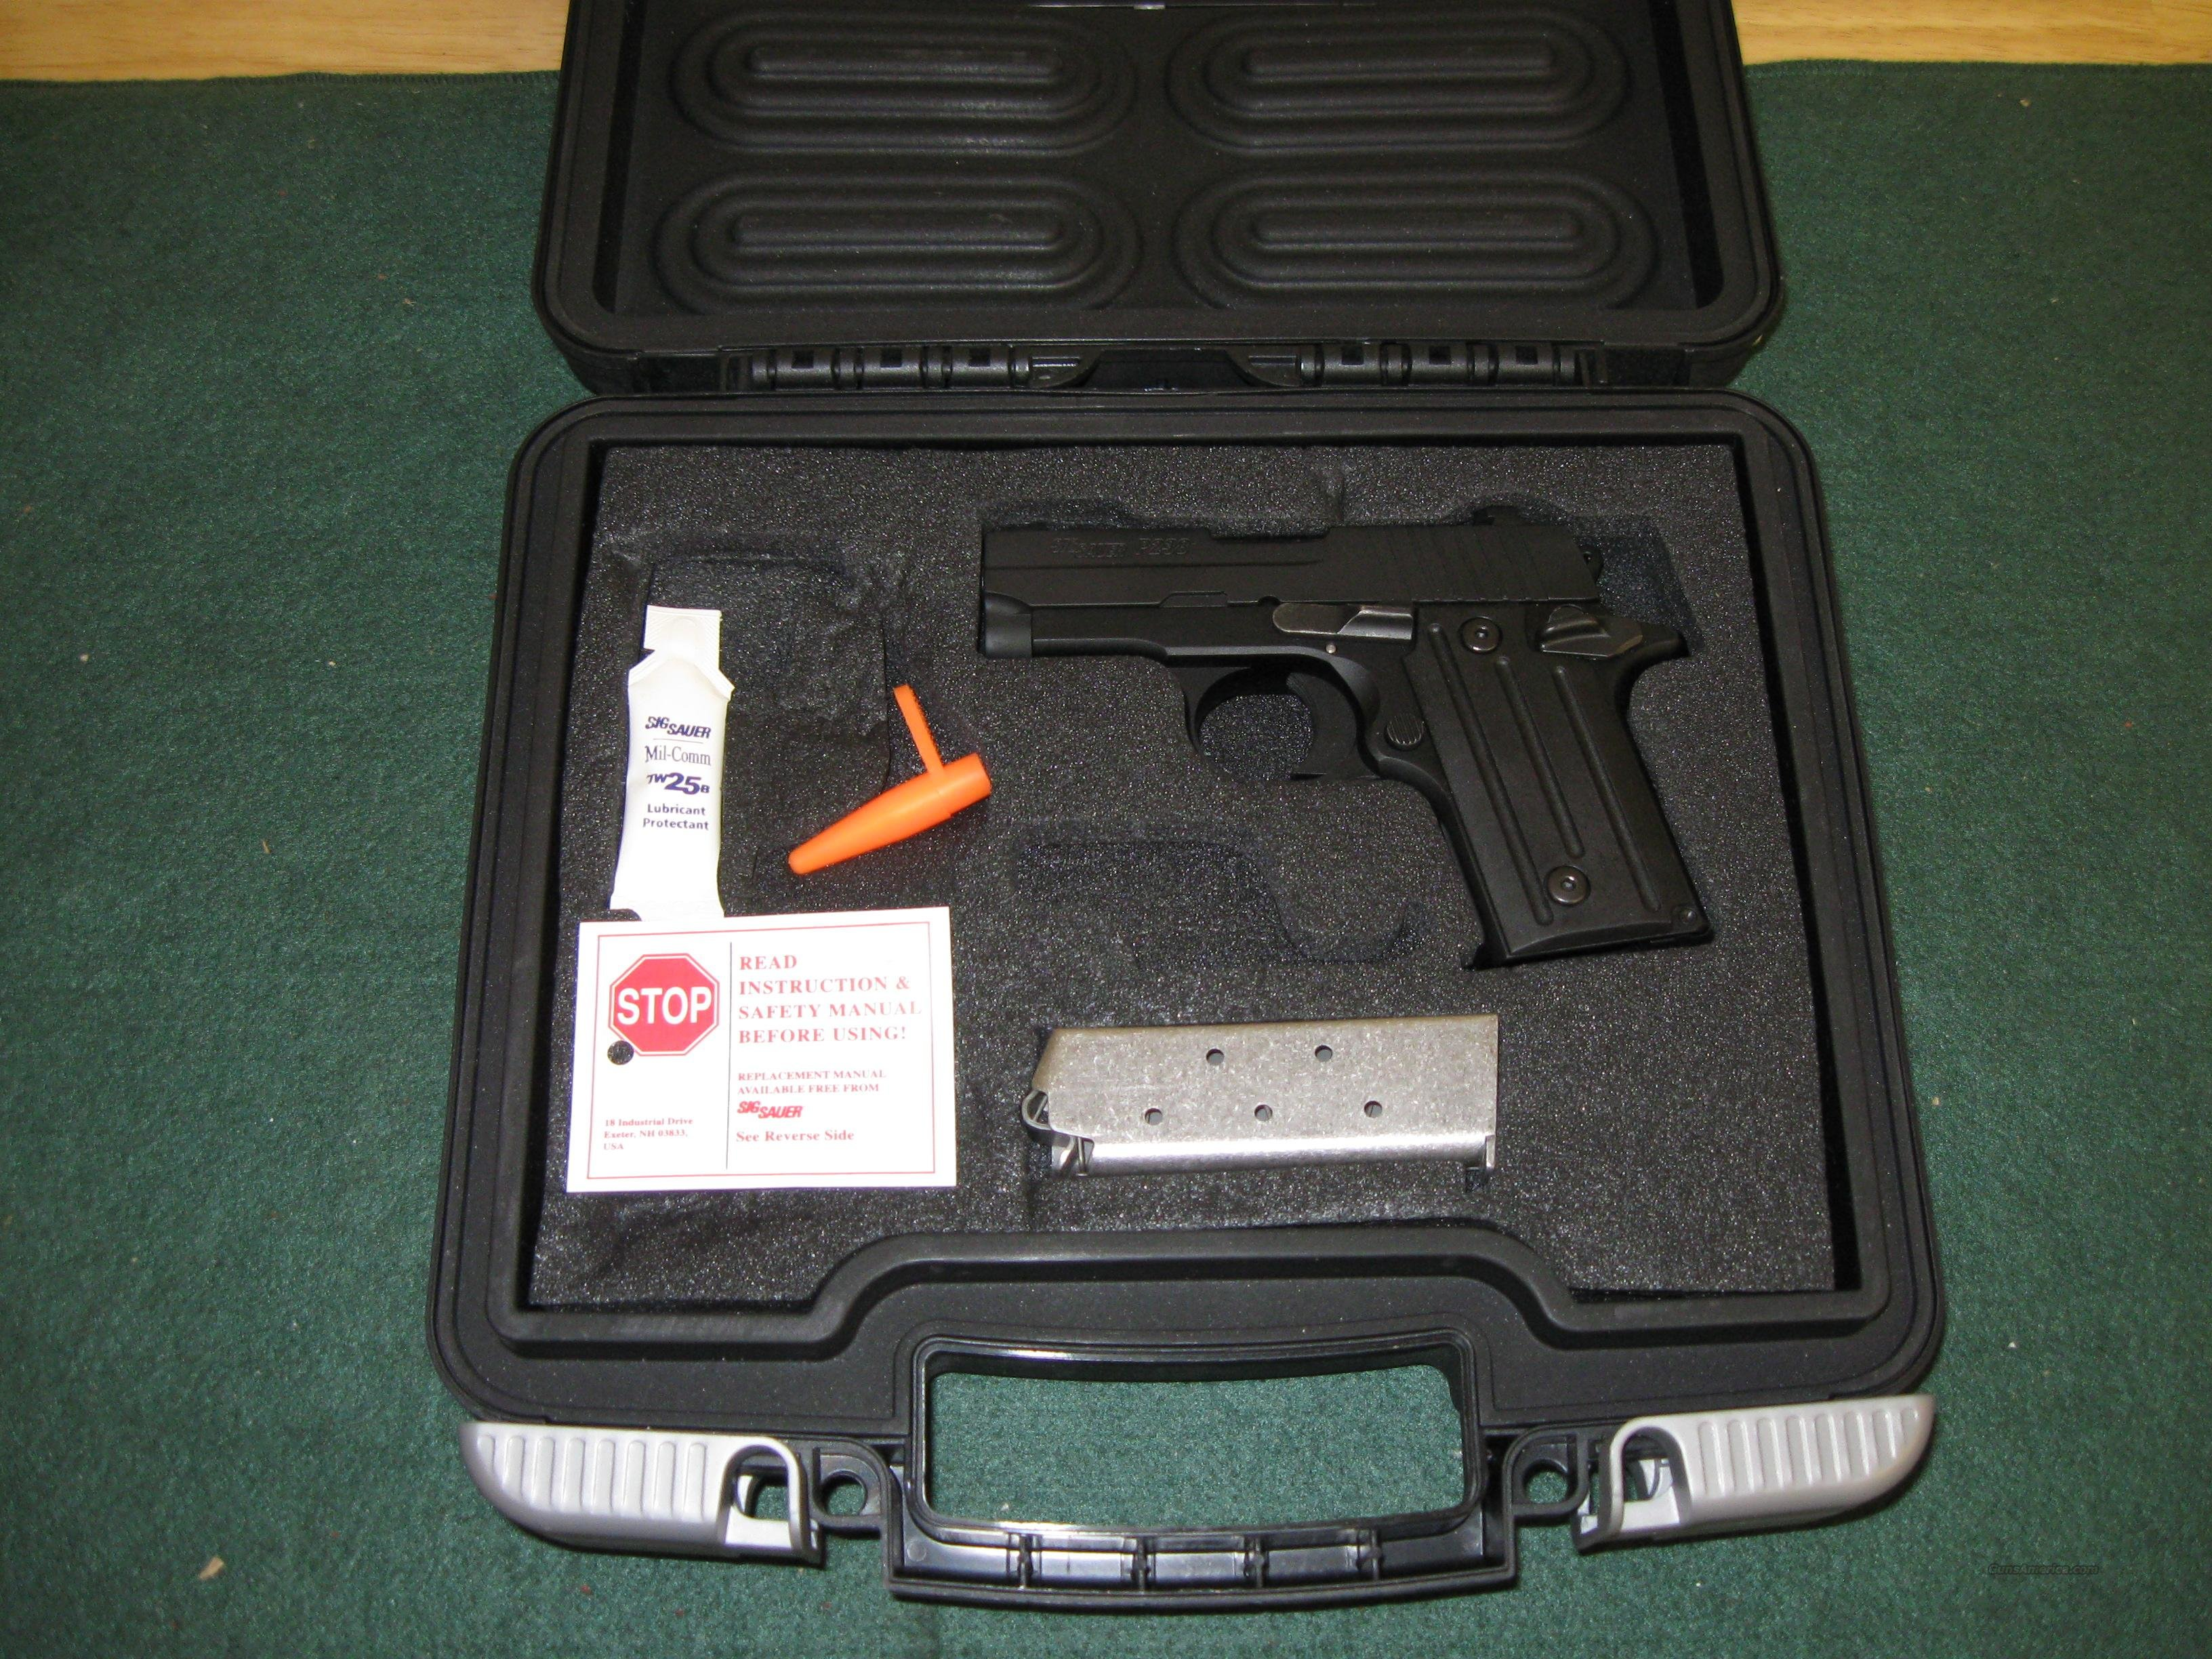 Sig Model P238 Pistol 238380B, 380 ACP, 2.7 in, Aluminum Grip, Black Finish, Fixed Sights, 6 Rd  Guns > Pistols > Sig - Sauer/Sigarms Pistols > P238